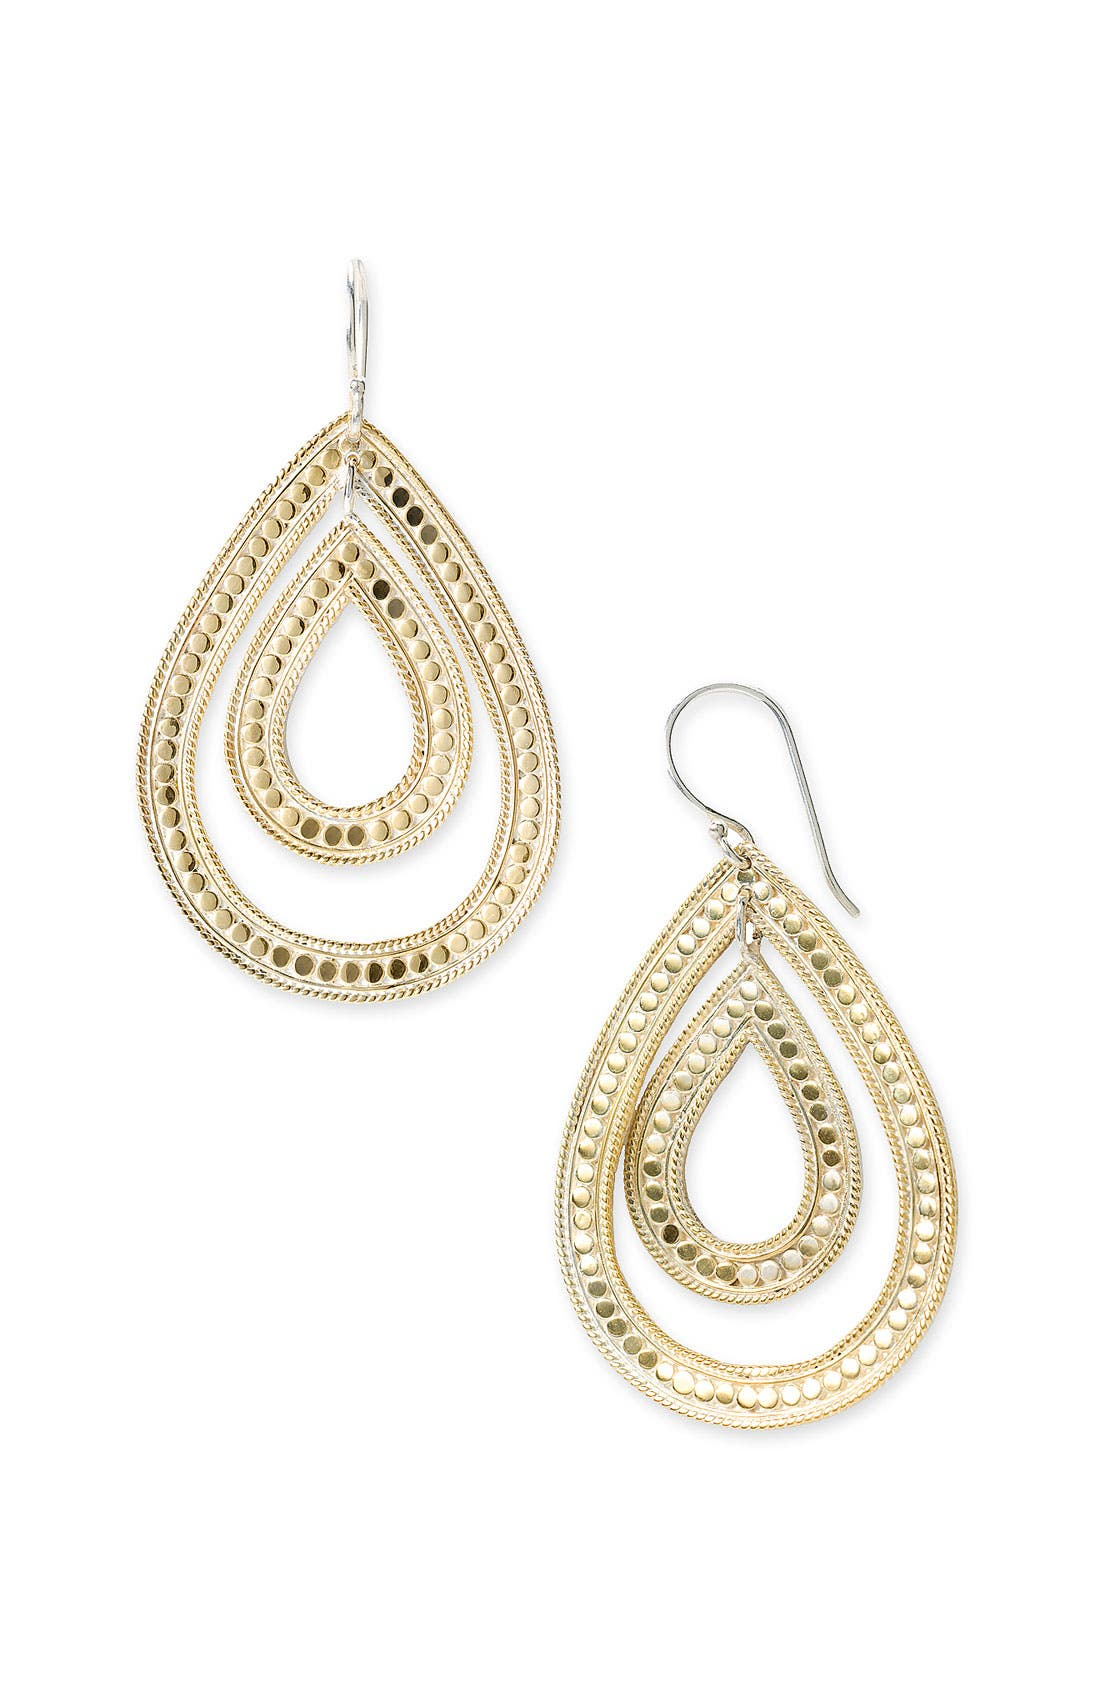 Main Image - Anna Beck 'Timor' Double Drop Earrings